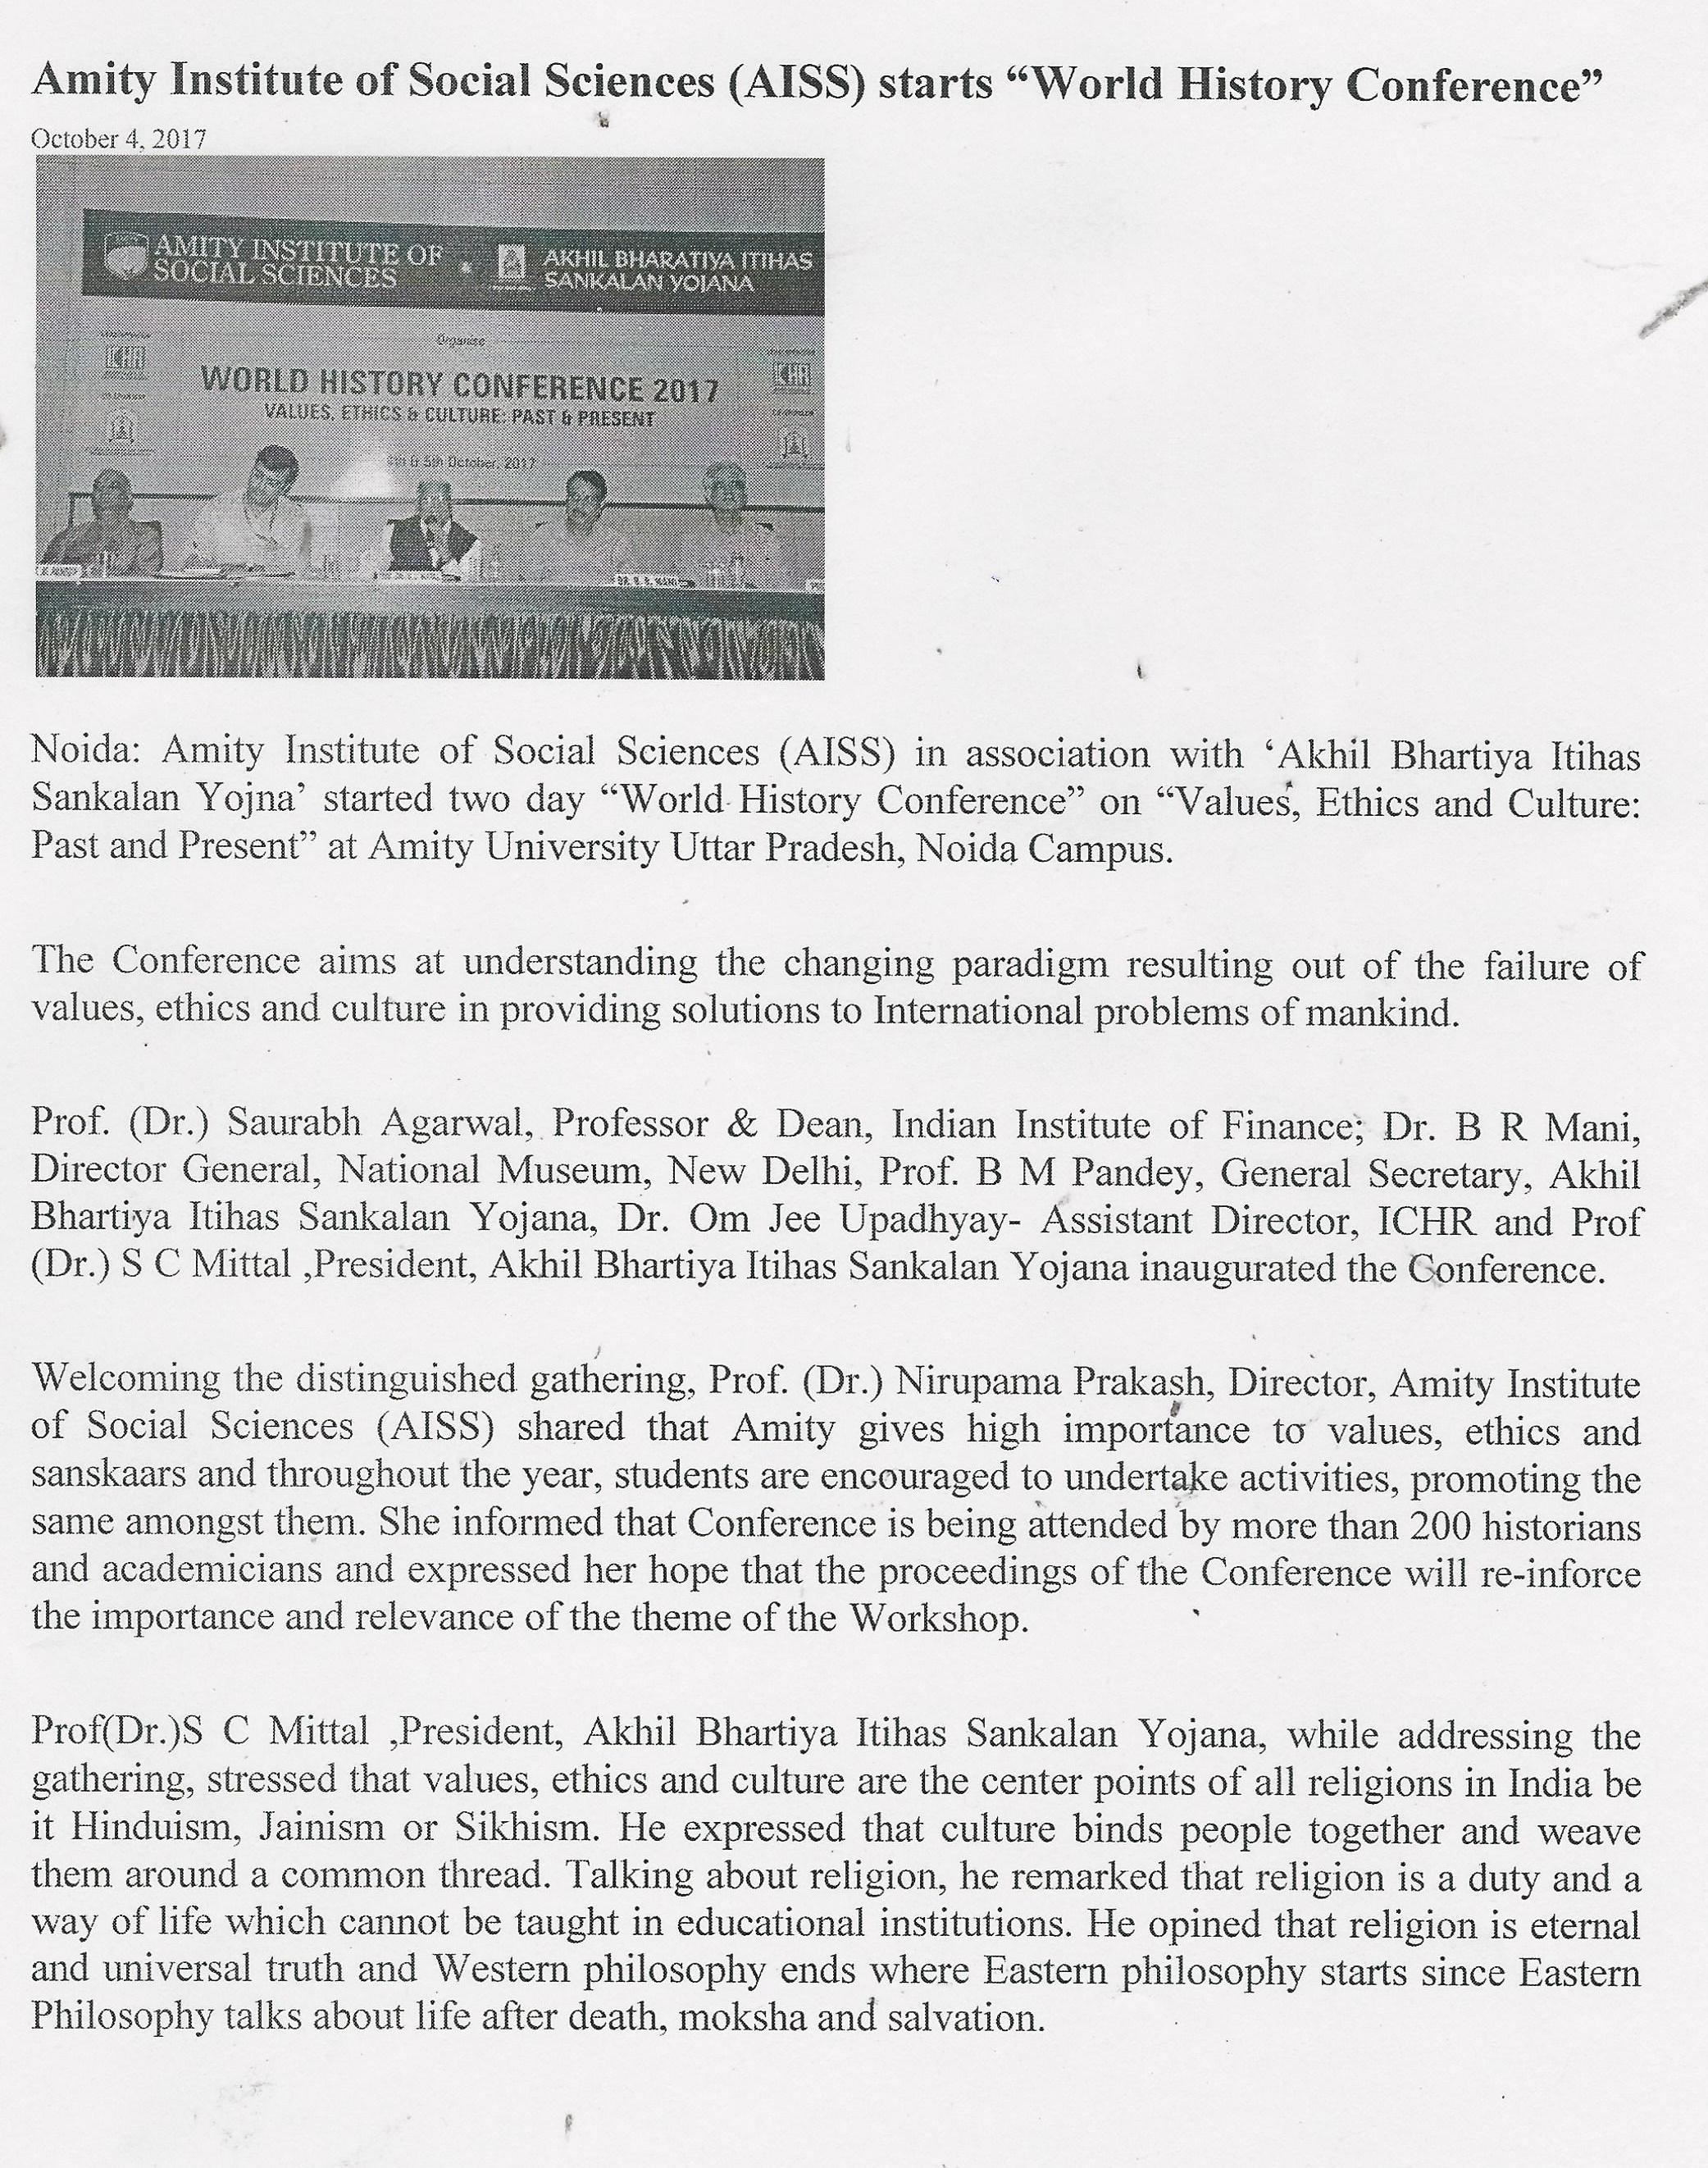 World History Conference 2017 held at Amity University Details